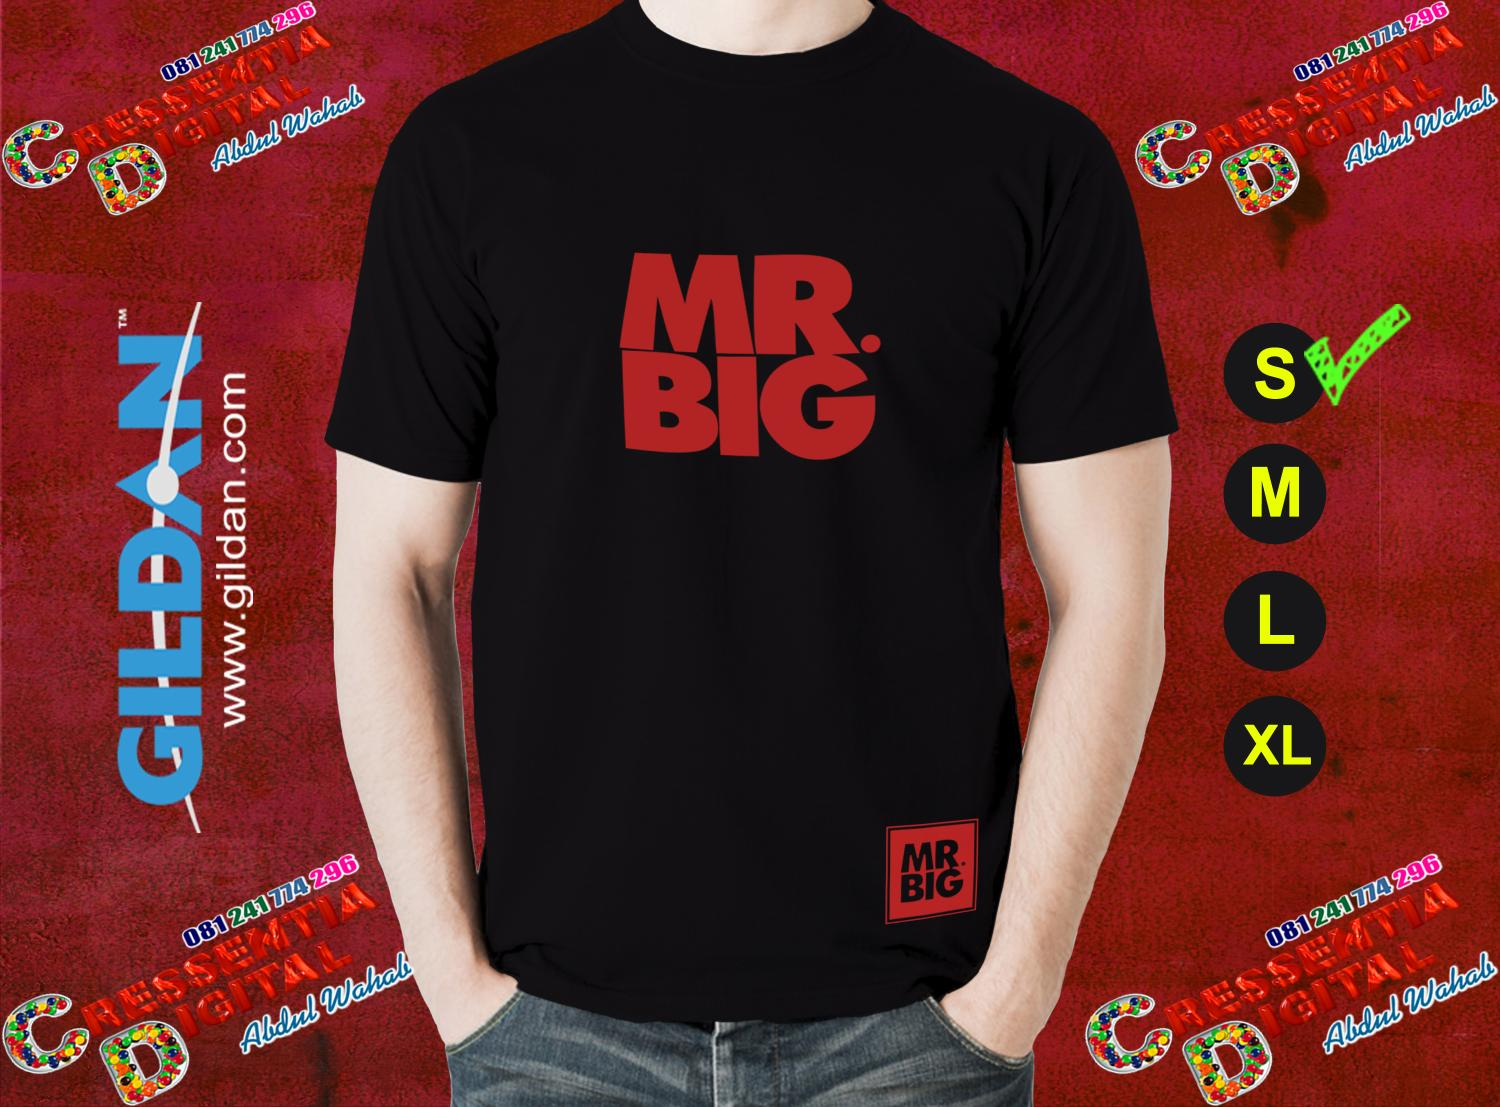 Kaos Mr Big Distro Id Warna Hitam Model Pria